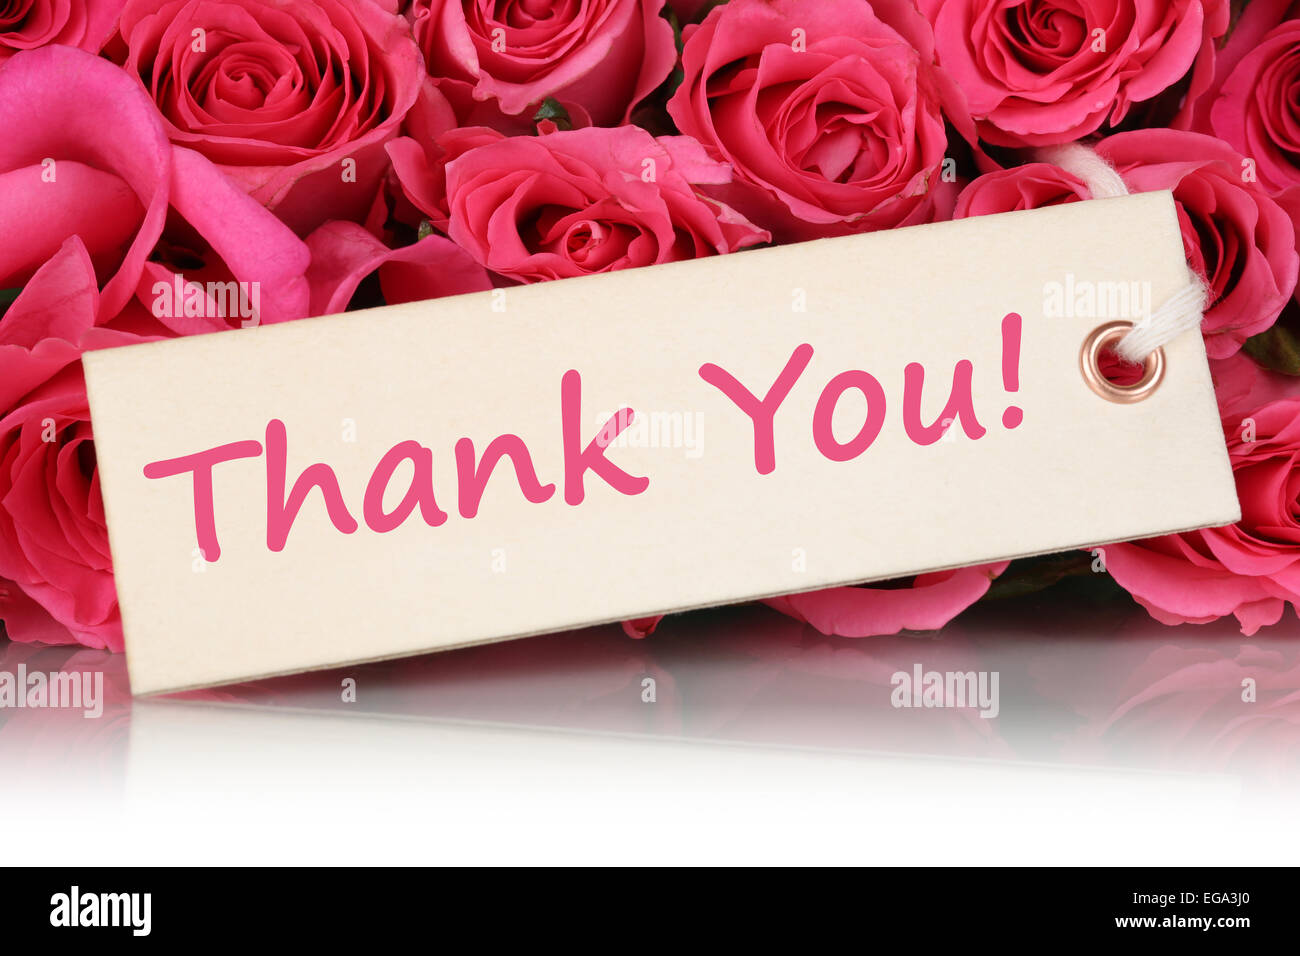 The Words Thank You On A Greeting Card With Roses Flowers On